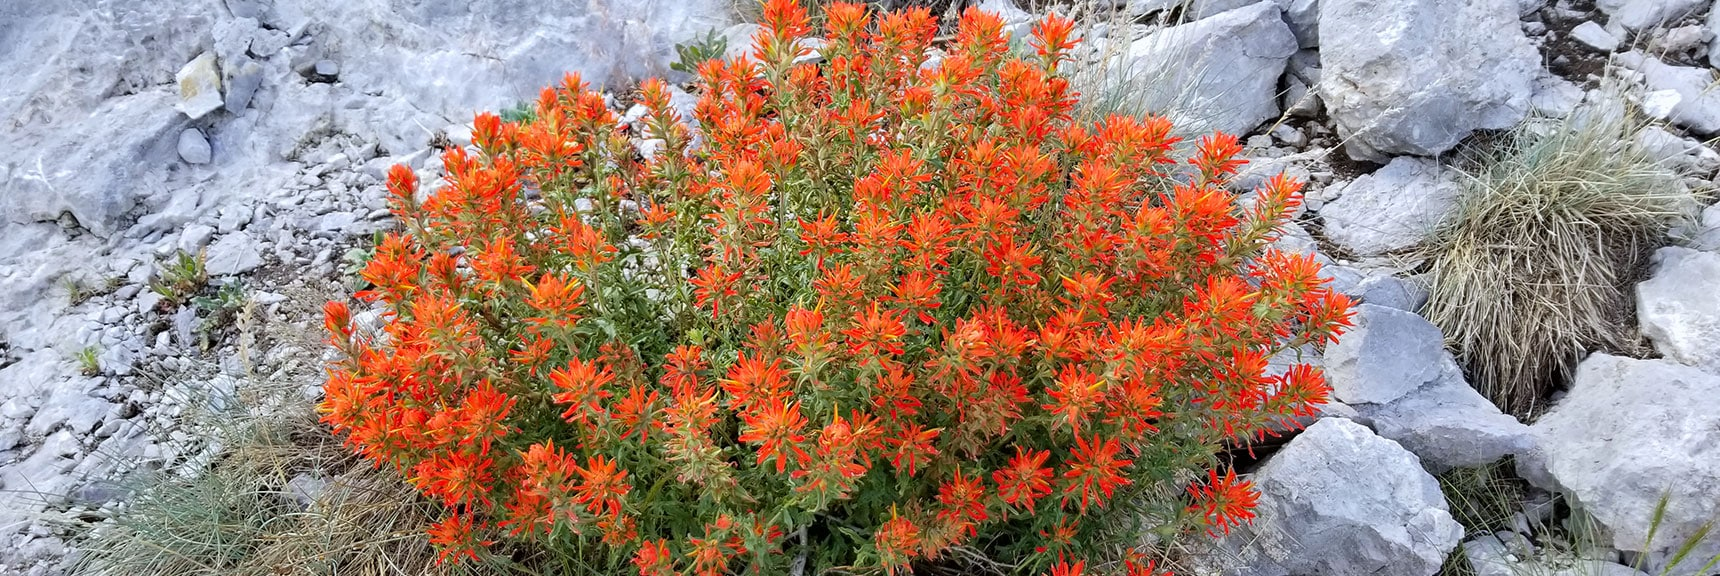 Indian Paintbrush Plant on the Cliff Bypass Trail at the Griffith/Harris Saddle | Six Peak Circuit Adventure in the Spring Mountains, Nevada